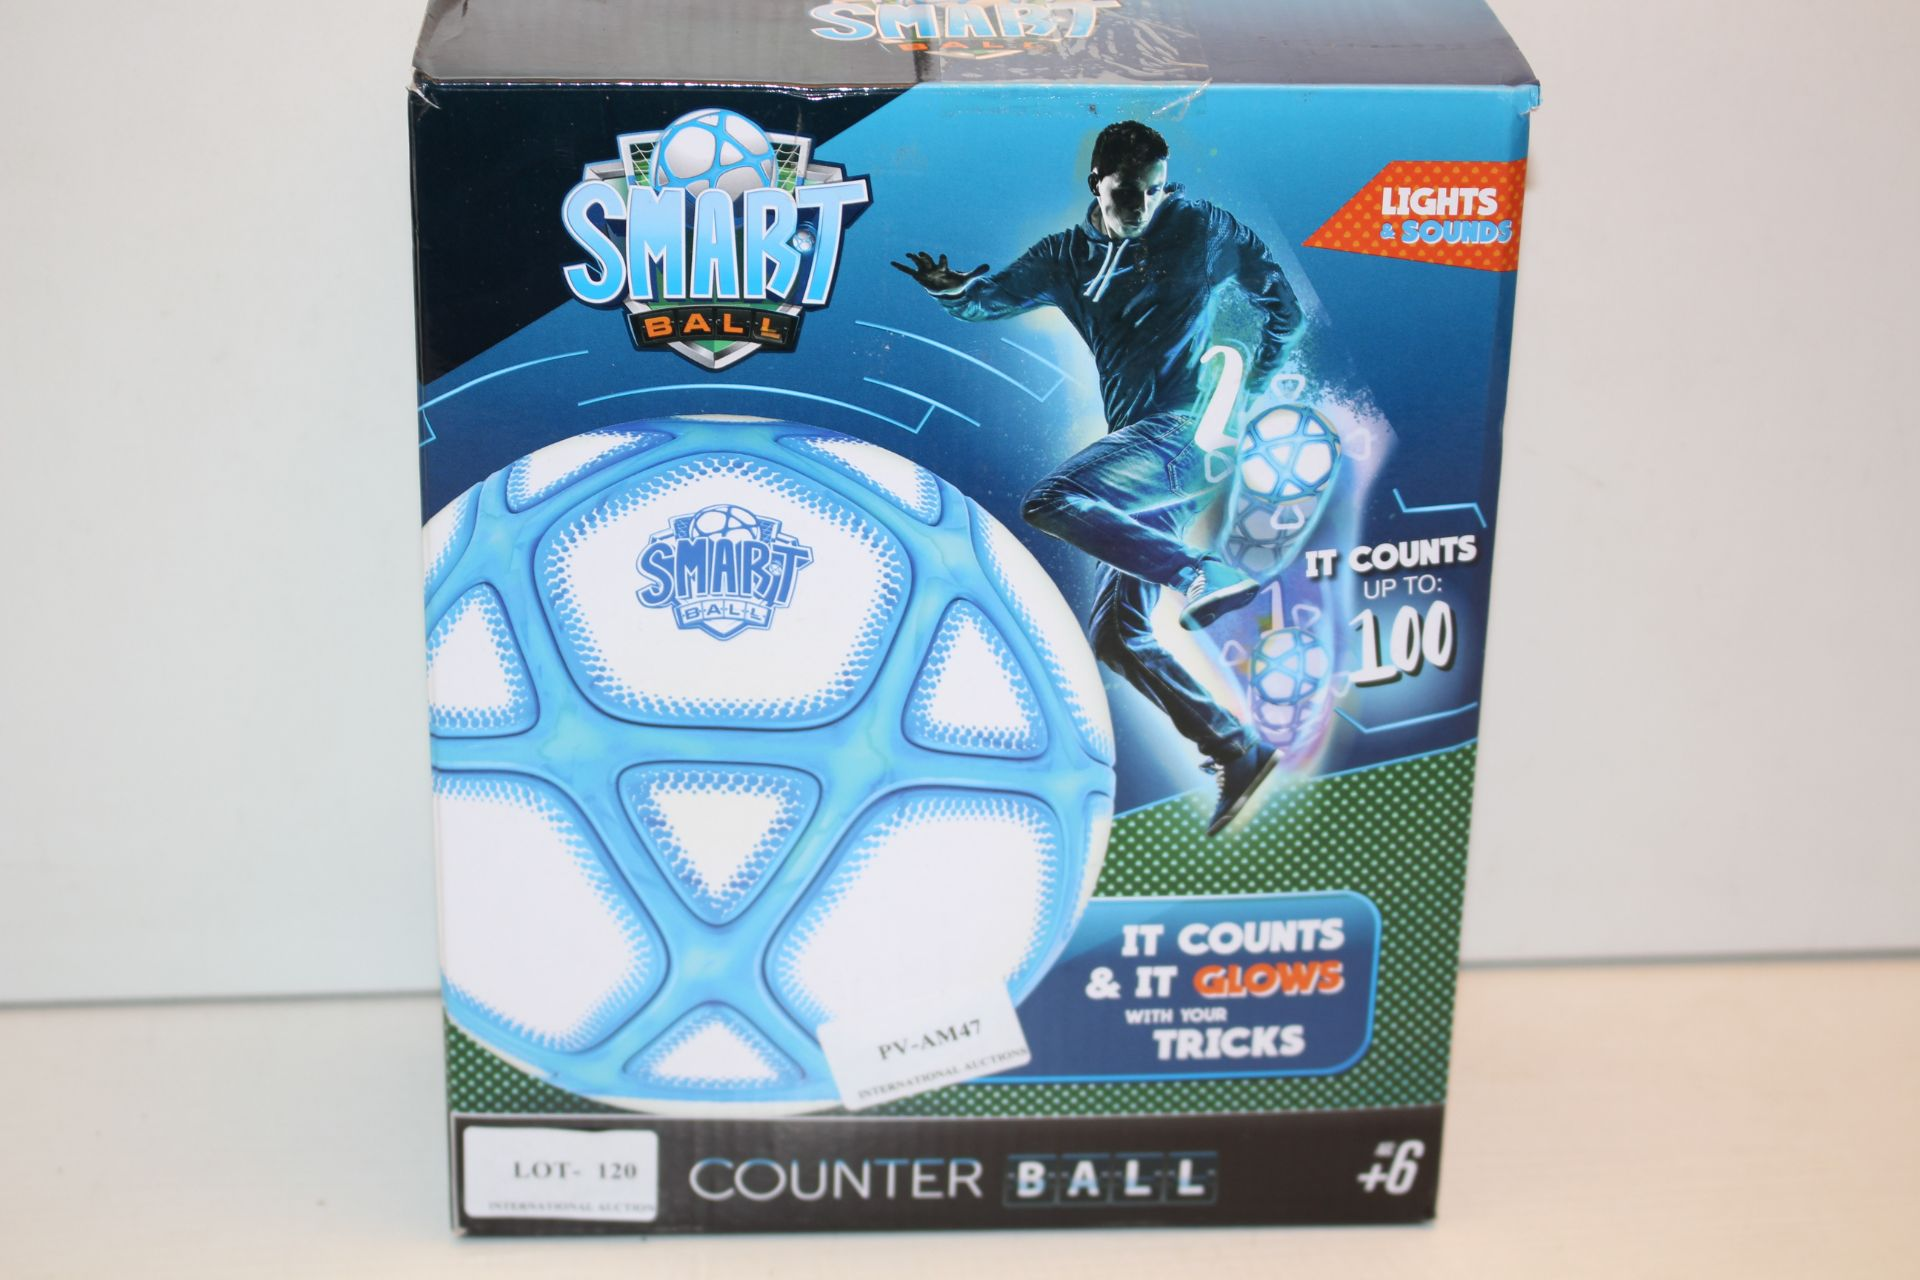 BOXED SMART BALL COUNTER BALL Condition ReportAppraisal Available on Request- All Items are